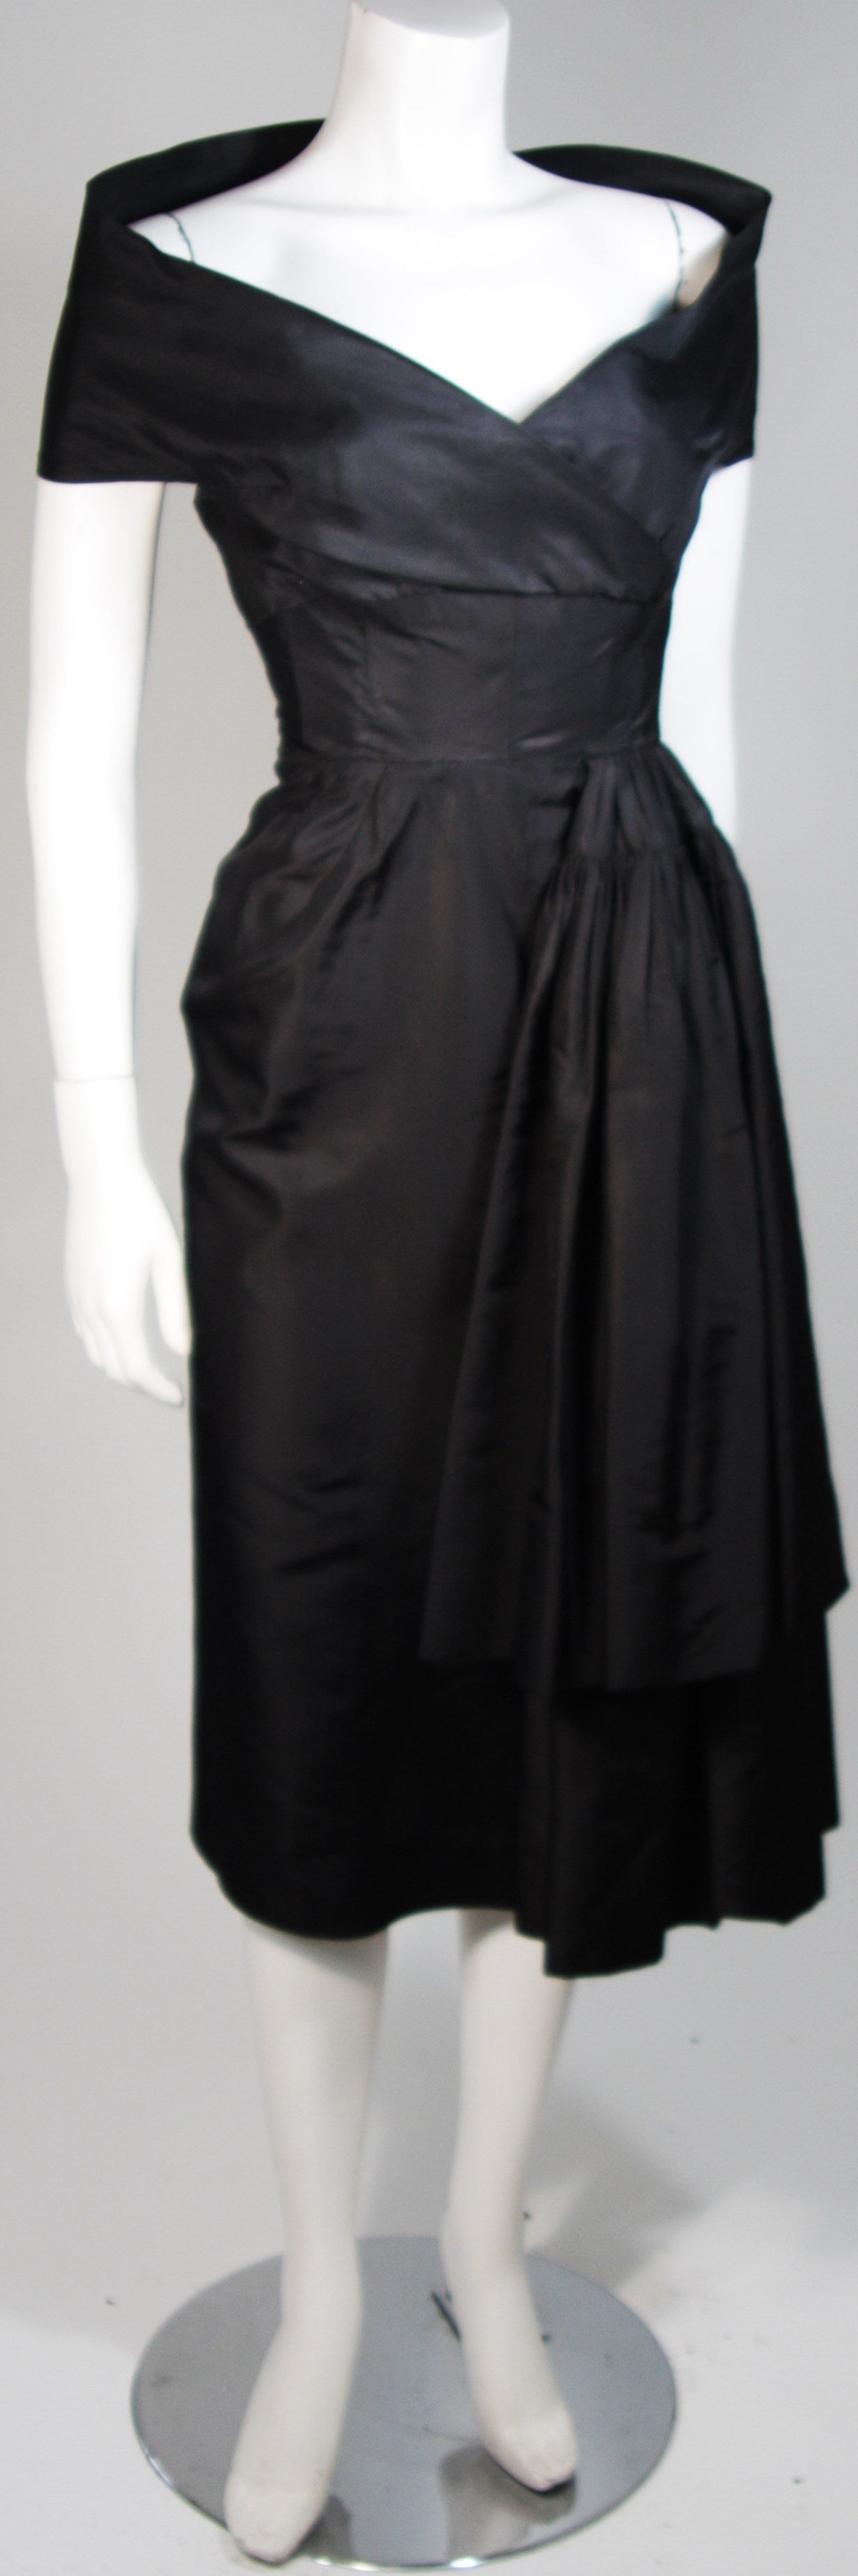 Women's Ceil Chapman Black Cocktail Dress with Draped Detail Size Small For Sale